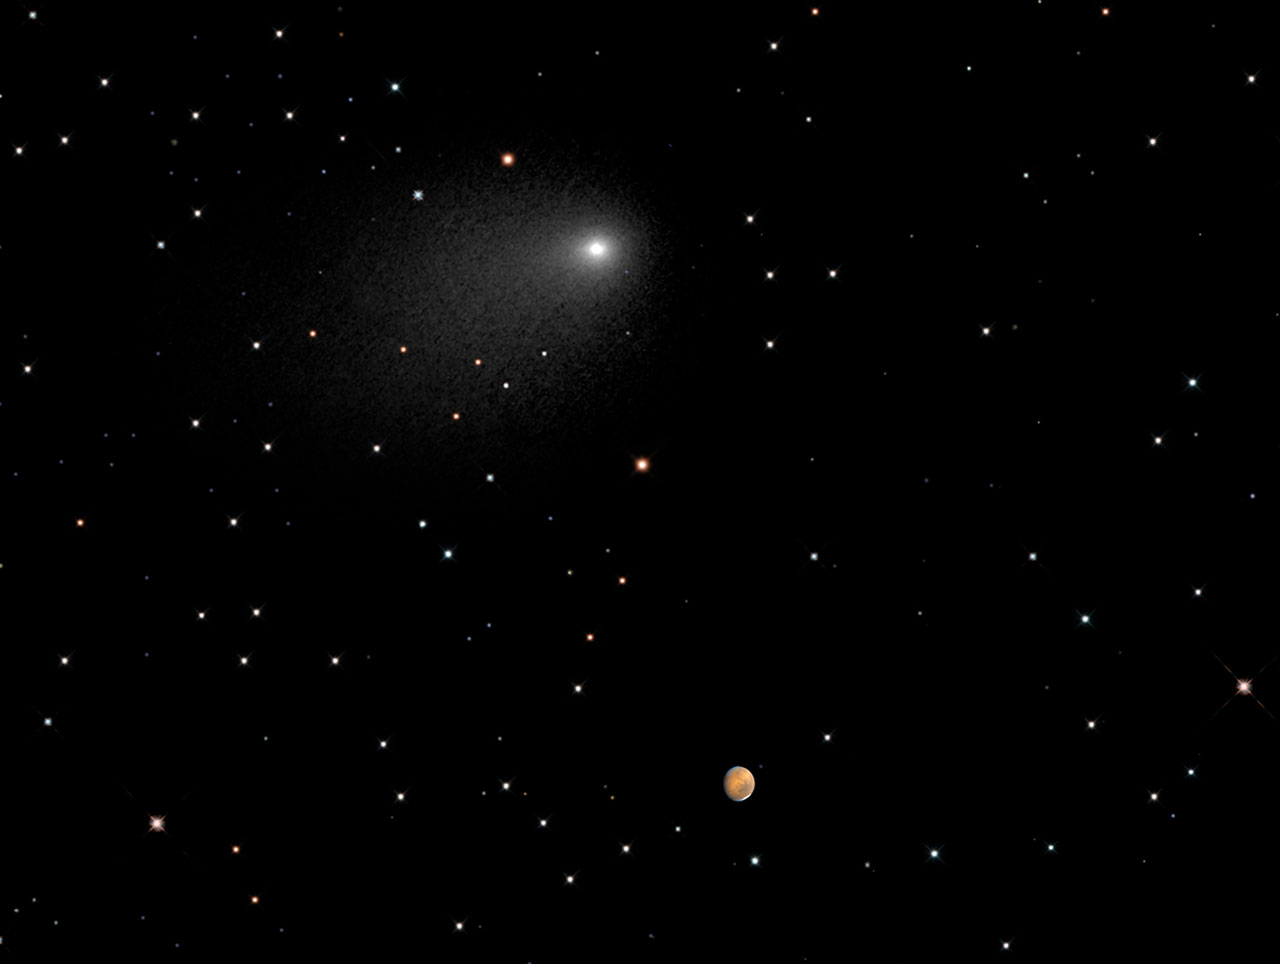 Comet and Mars close together against a backdrop of stars.